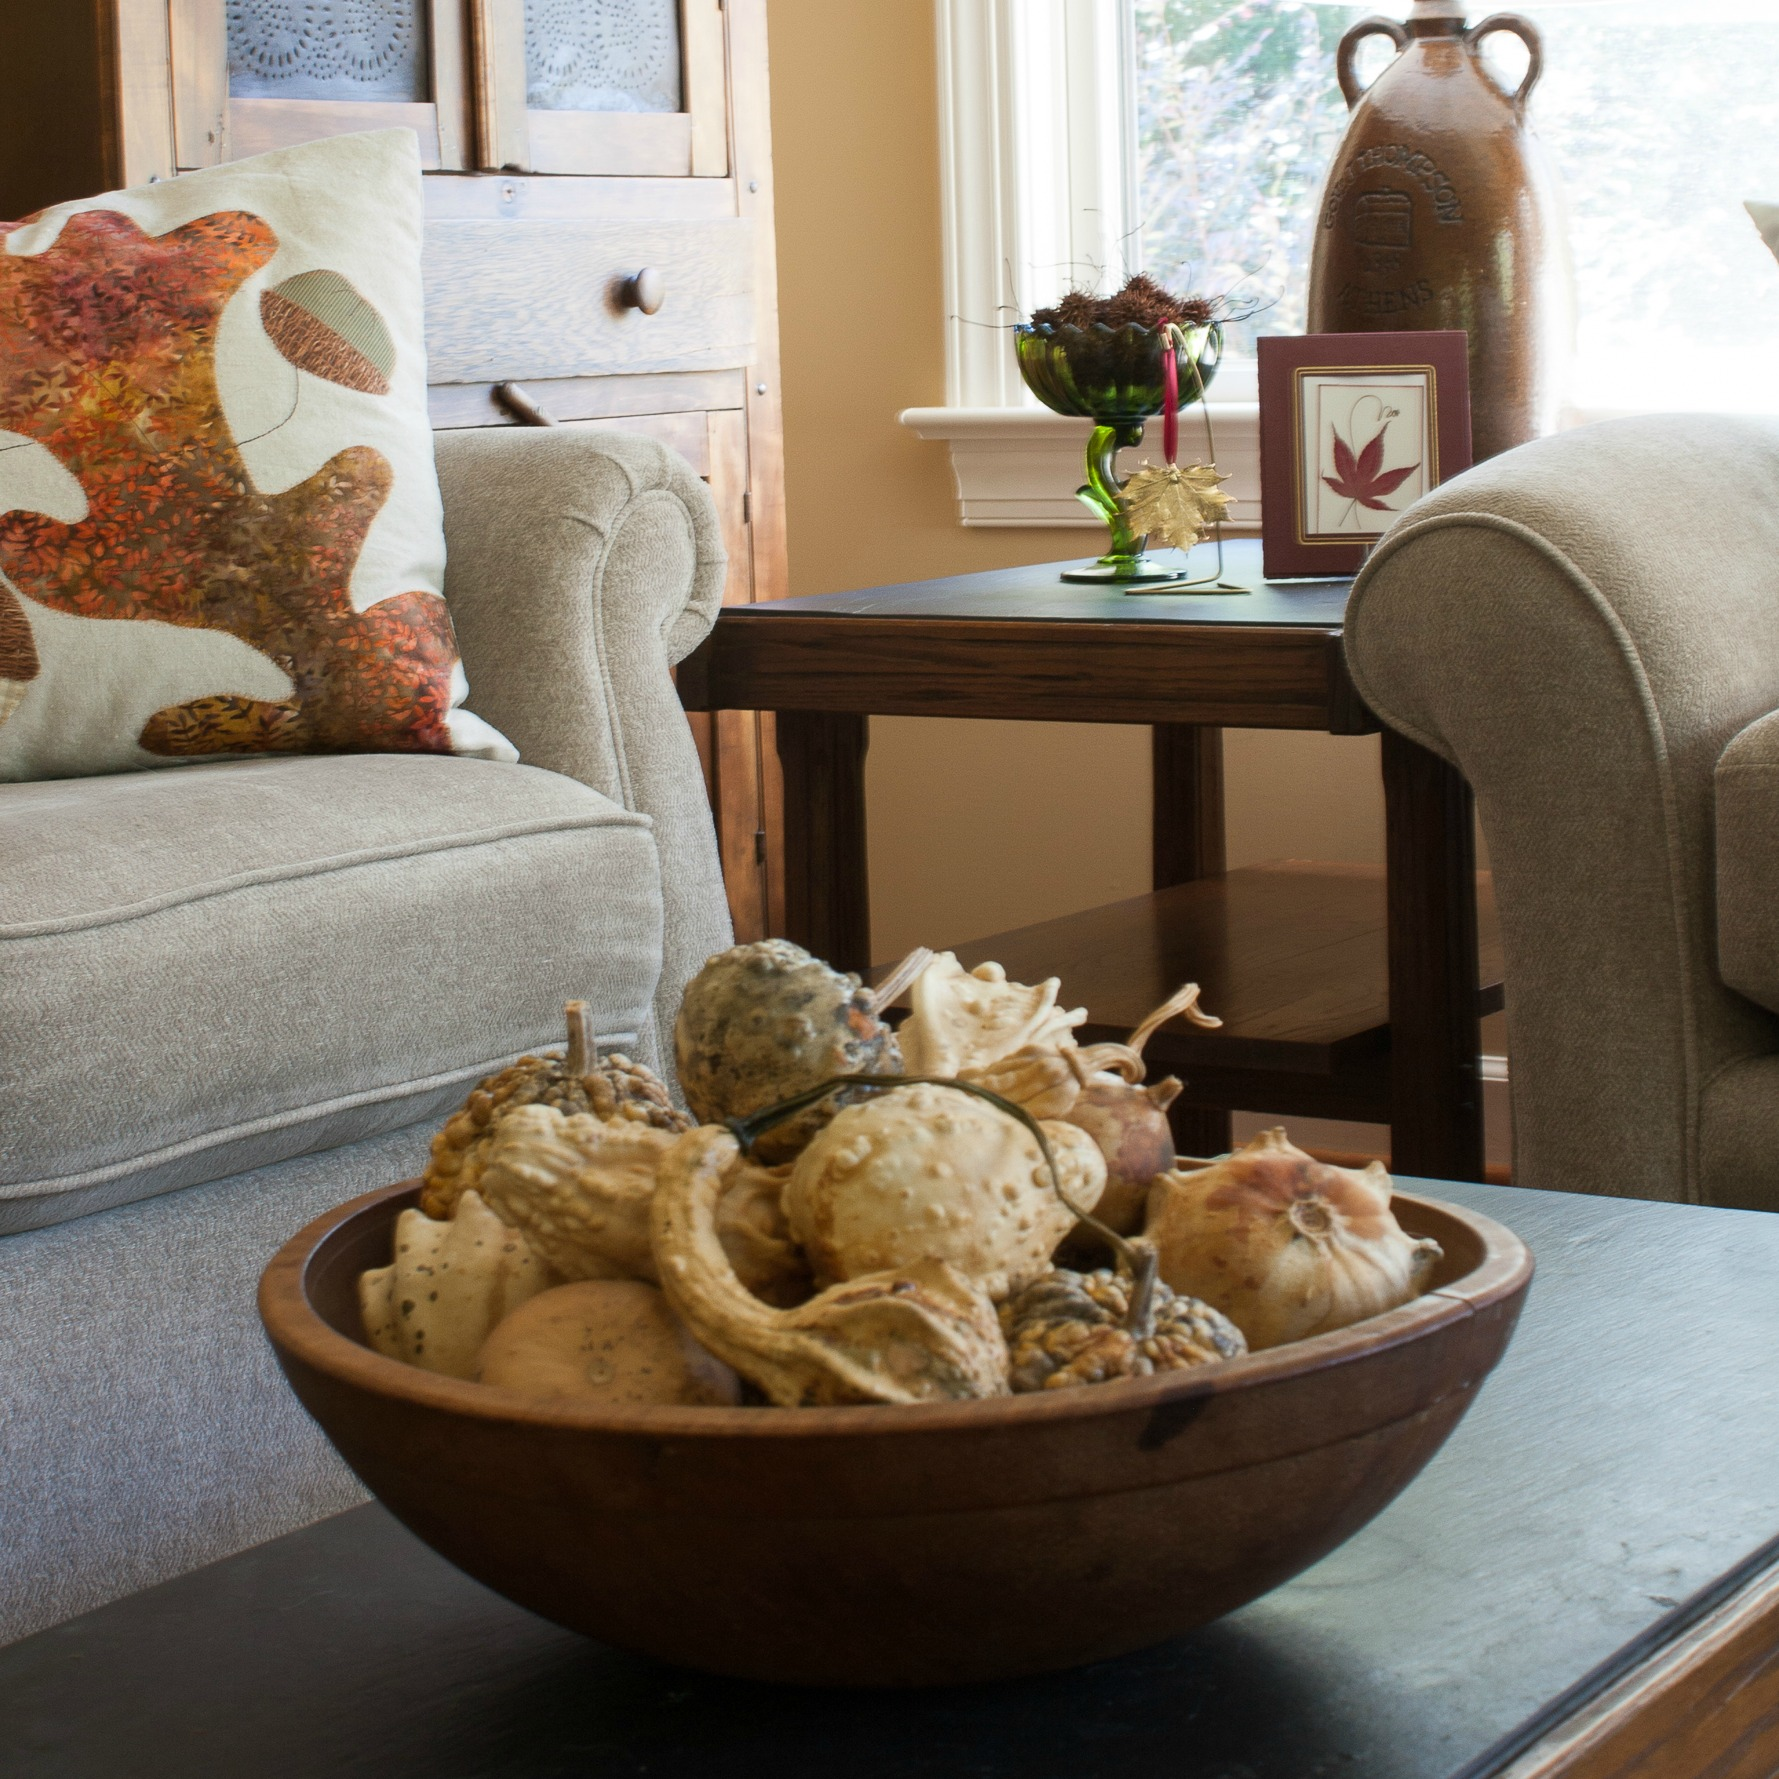 Vintage Fall Decor in the Family Room - Embracing the Imperfect